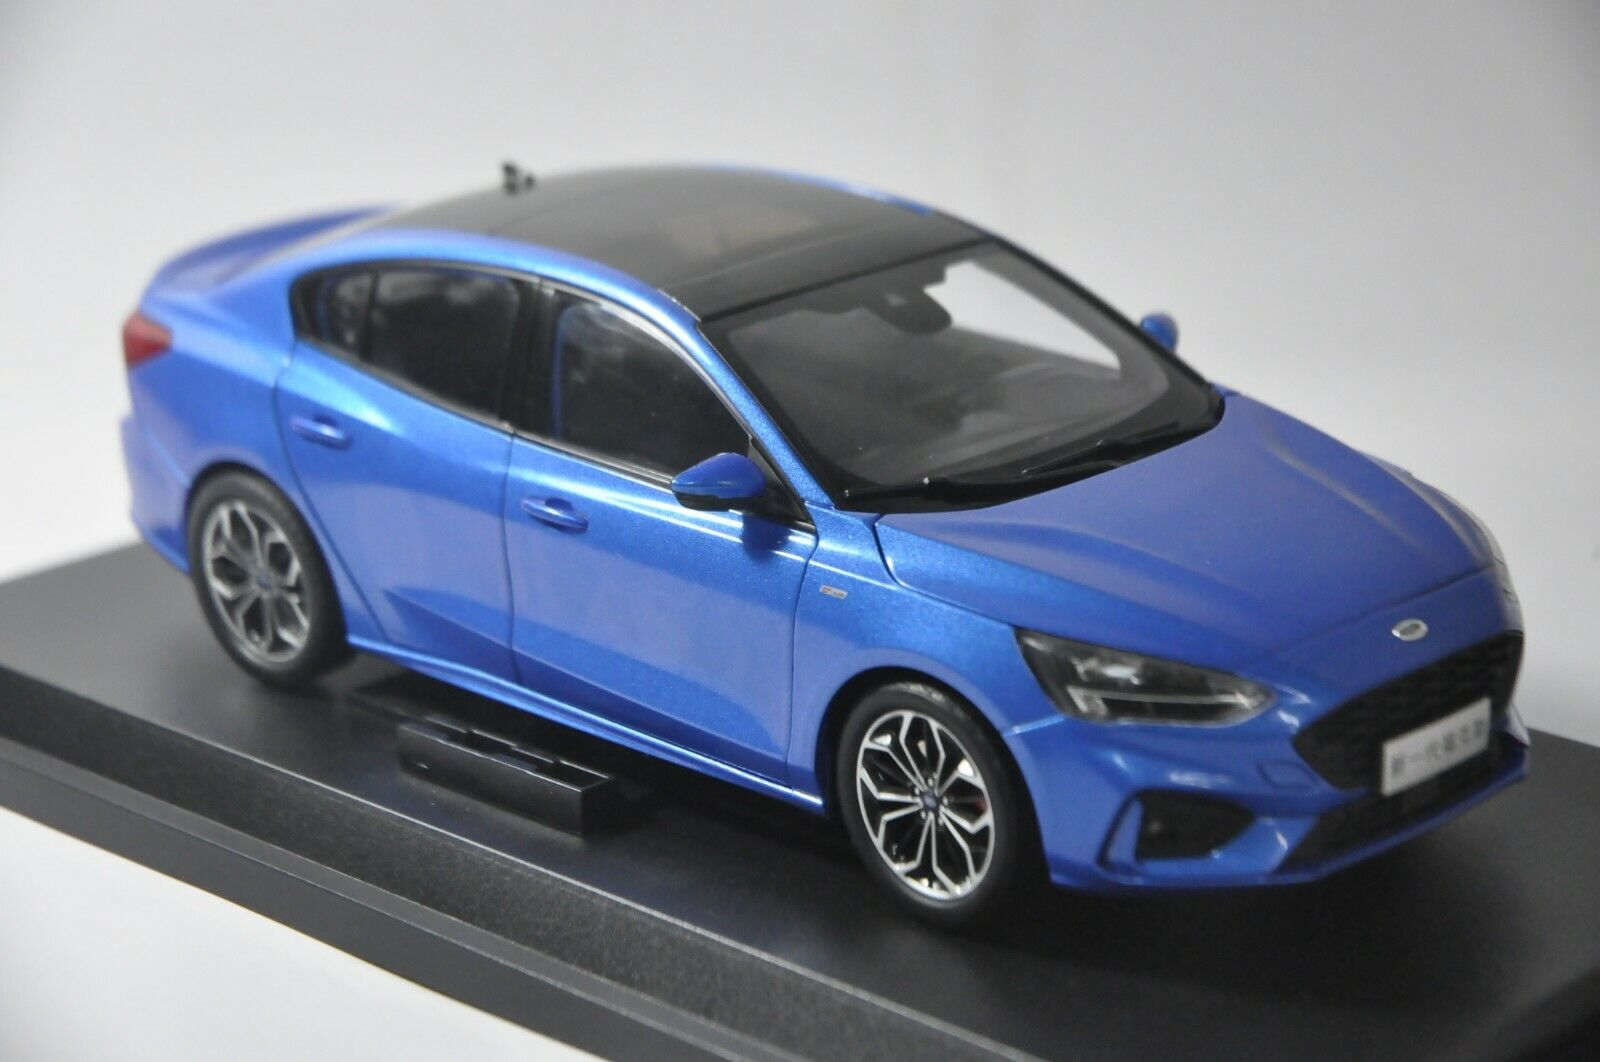 Blue Ford Focus >> Details About Ford Focus 2020 Car Model In Scale 1 18 Blue